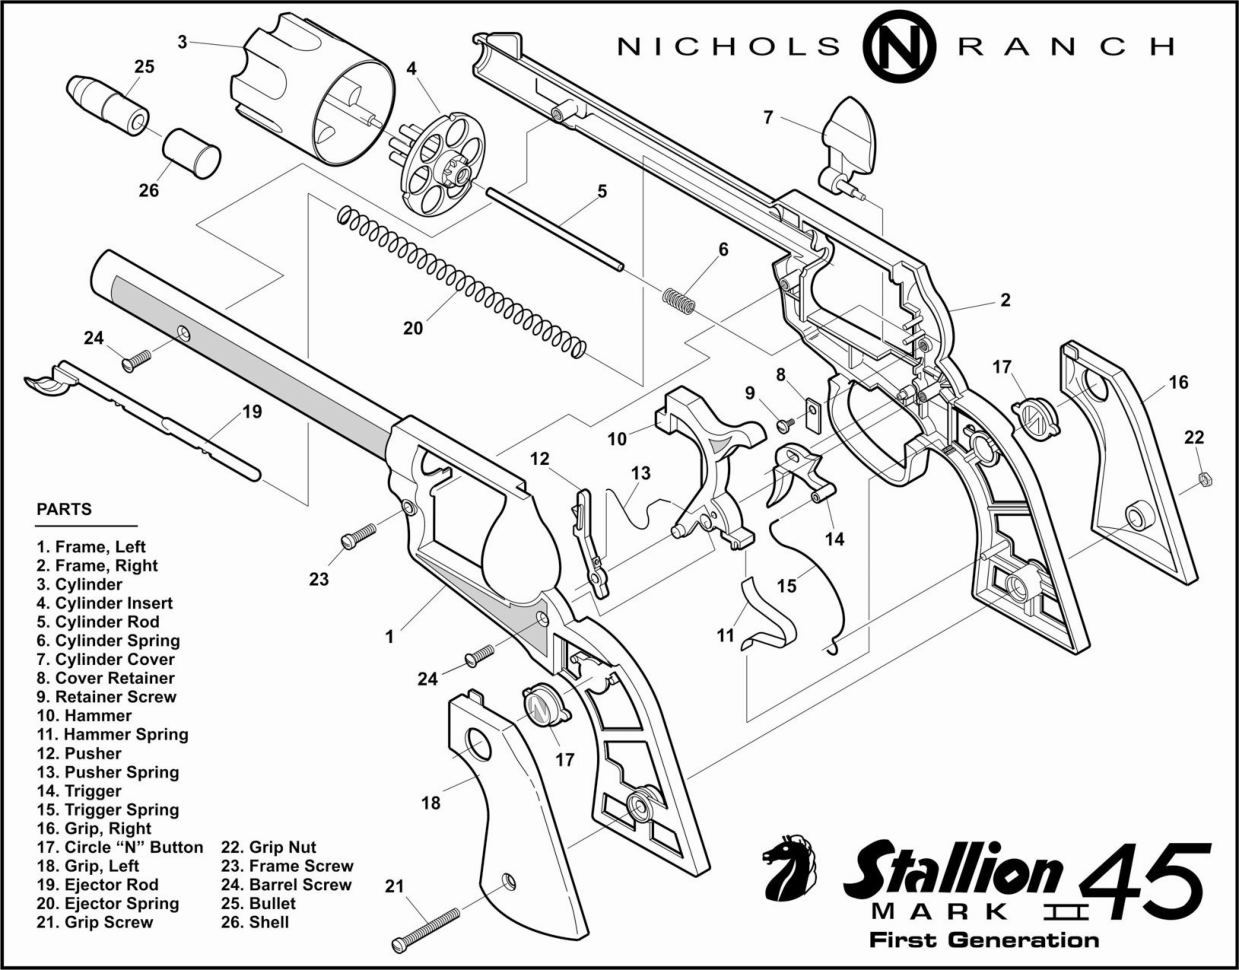 needle gun schematics  needle  free engine image for user